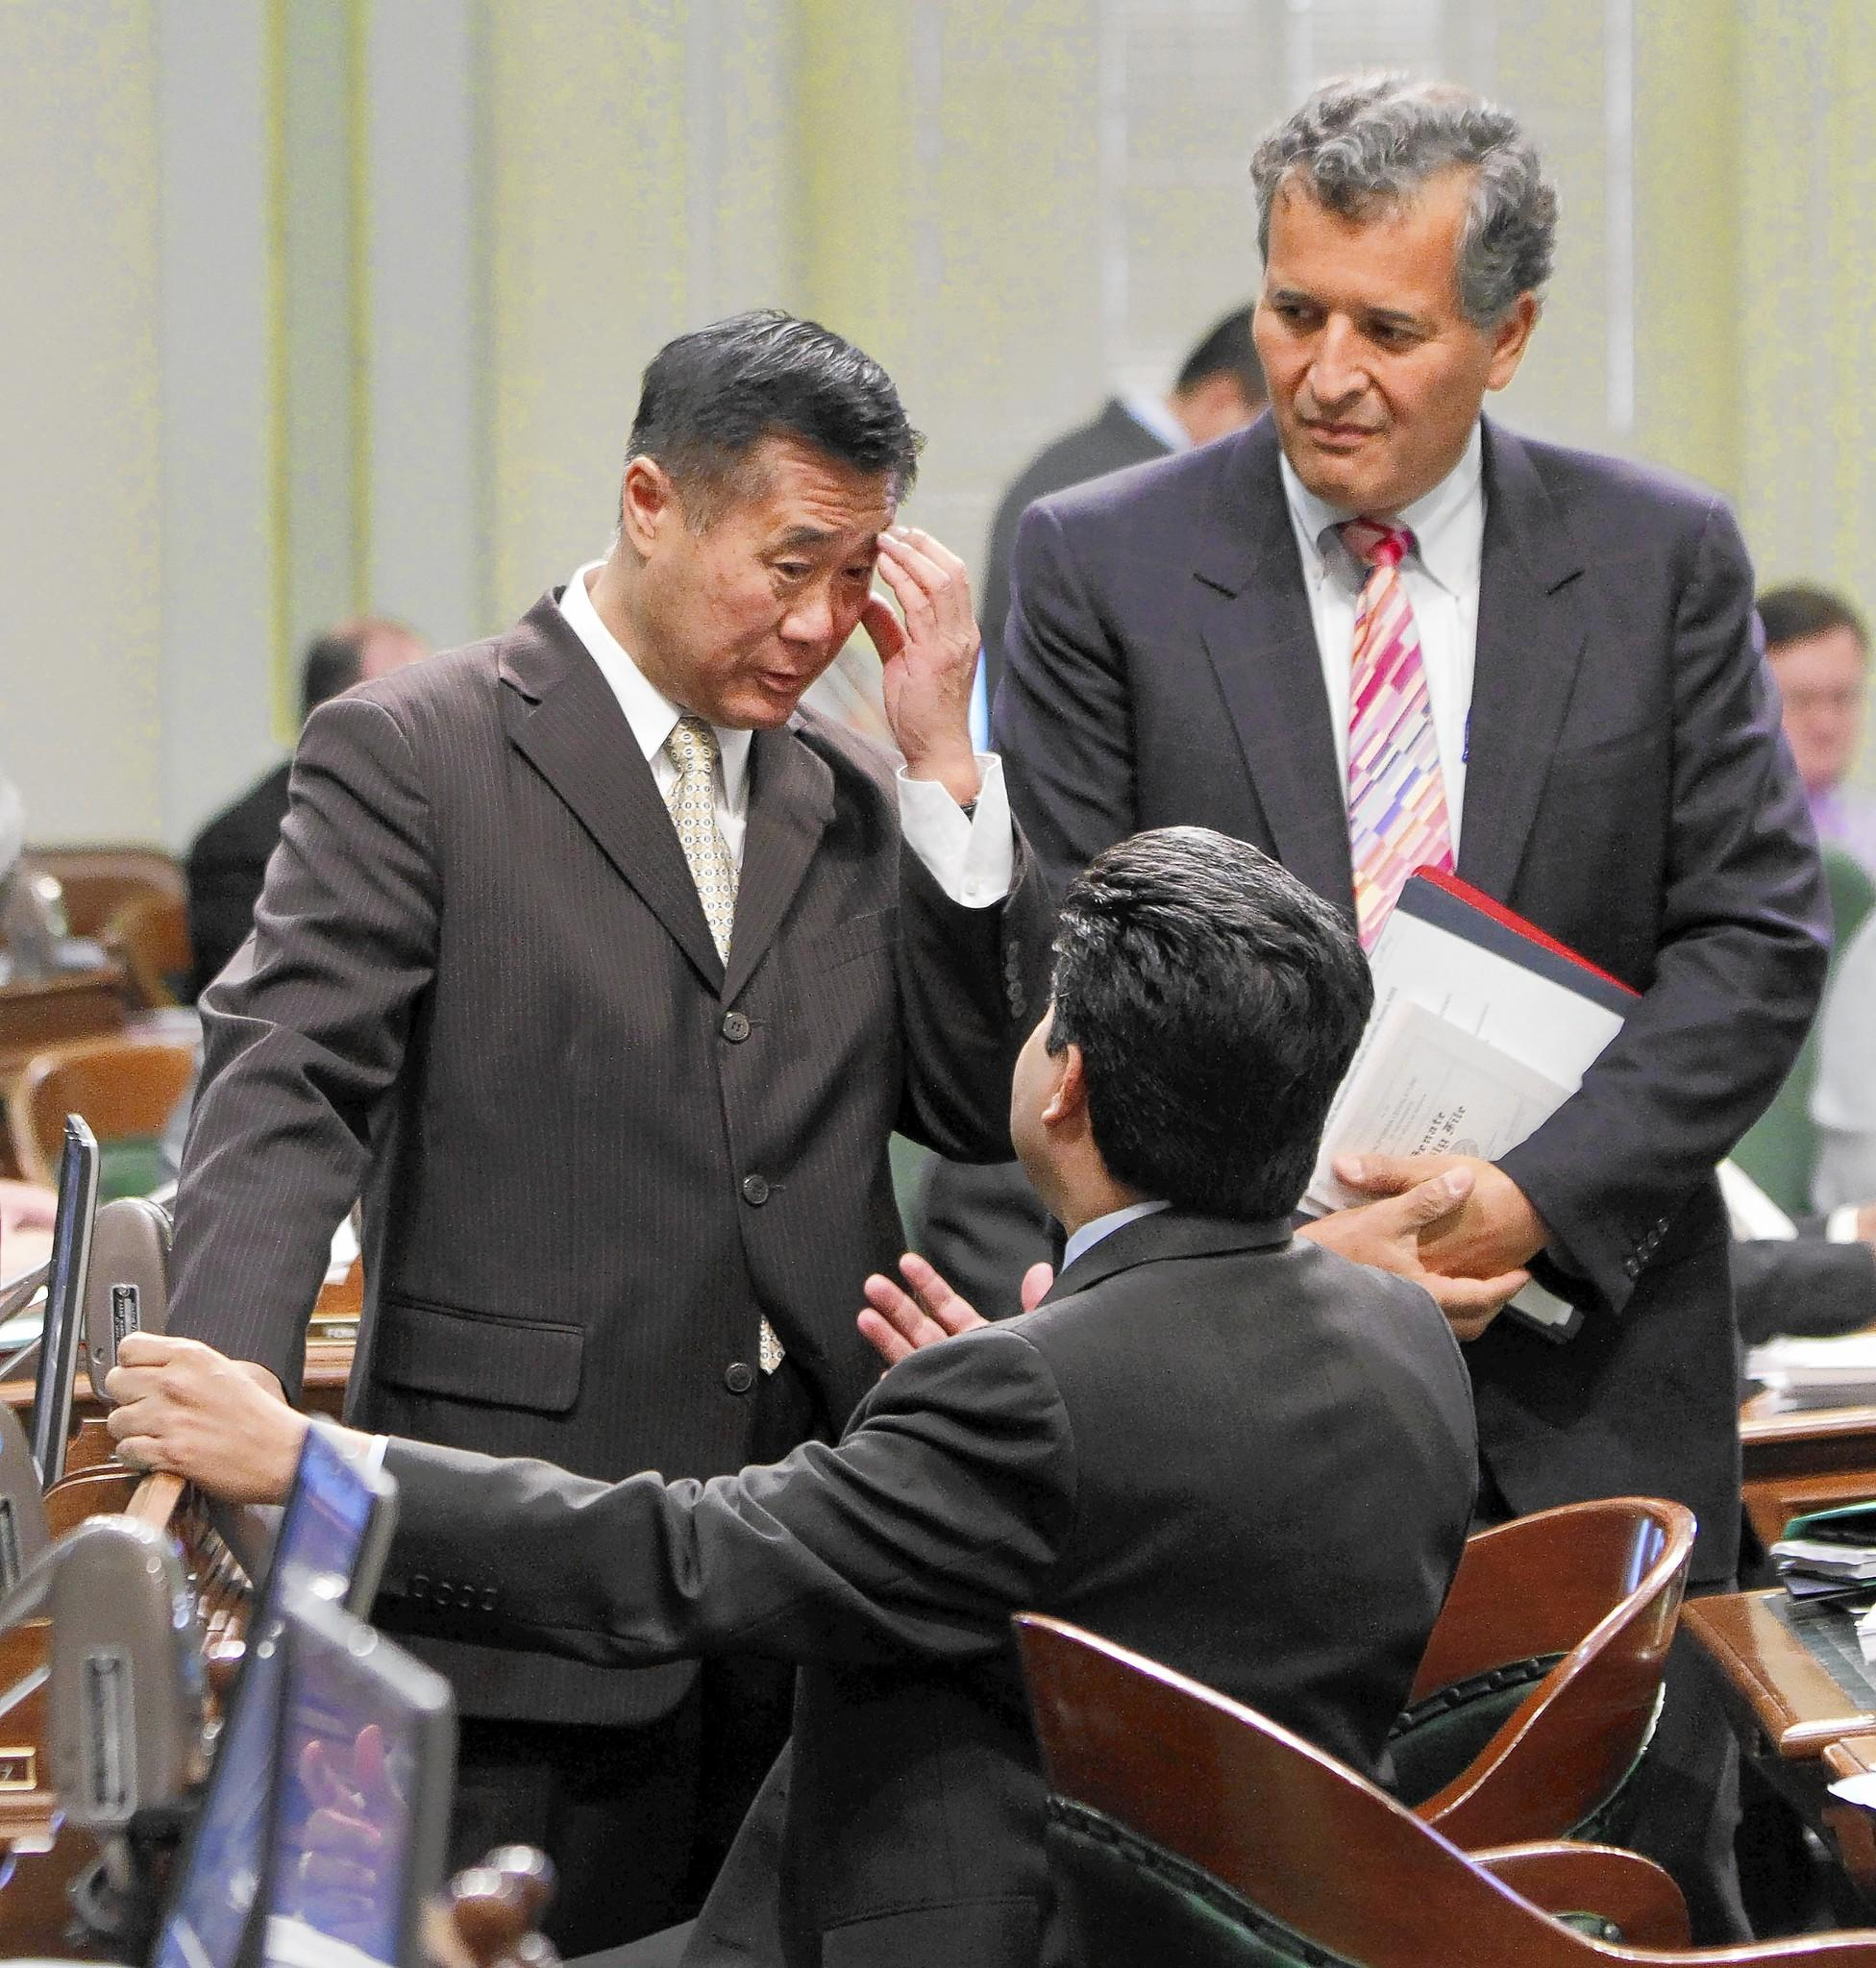 State Sen. LeLand Yee (D-San Francisco), left, talks with Assembly members in the Capitol in August 2012. Last week, Yee was arrested on charges of conspiring to illegally deal firearms, public corruption and wire fraud.